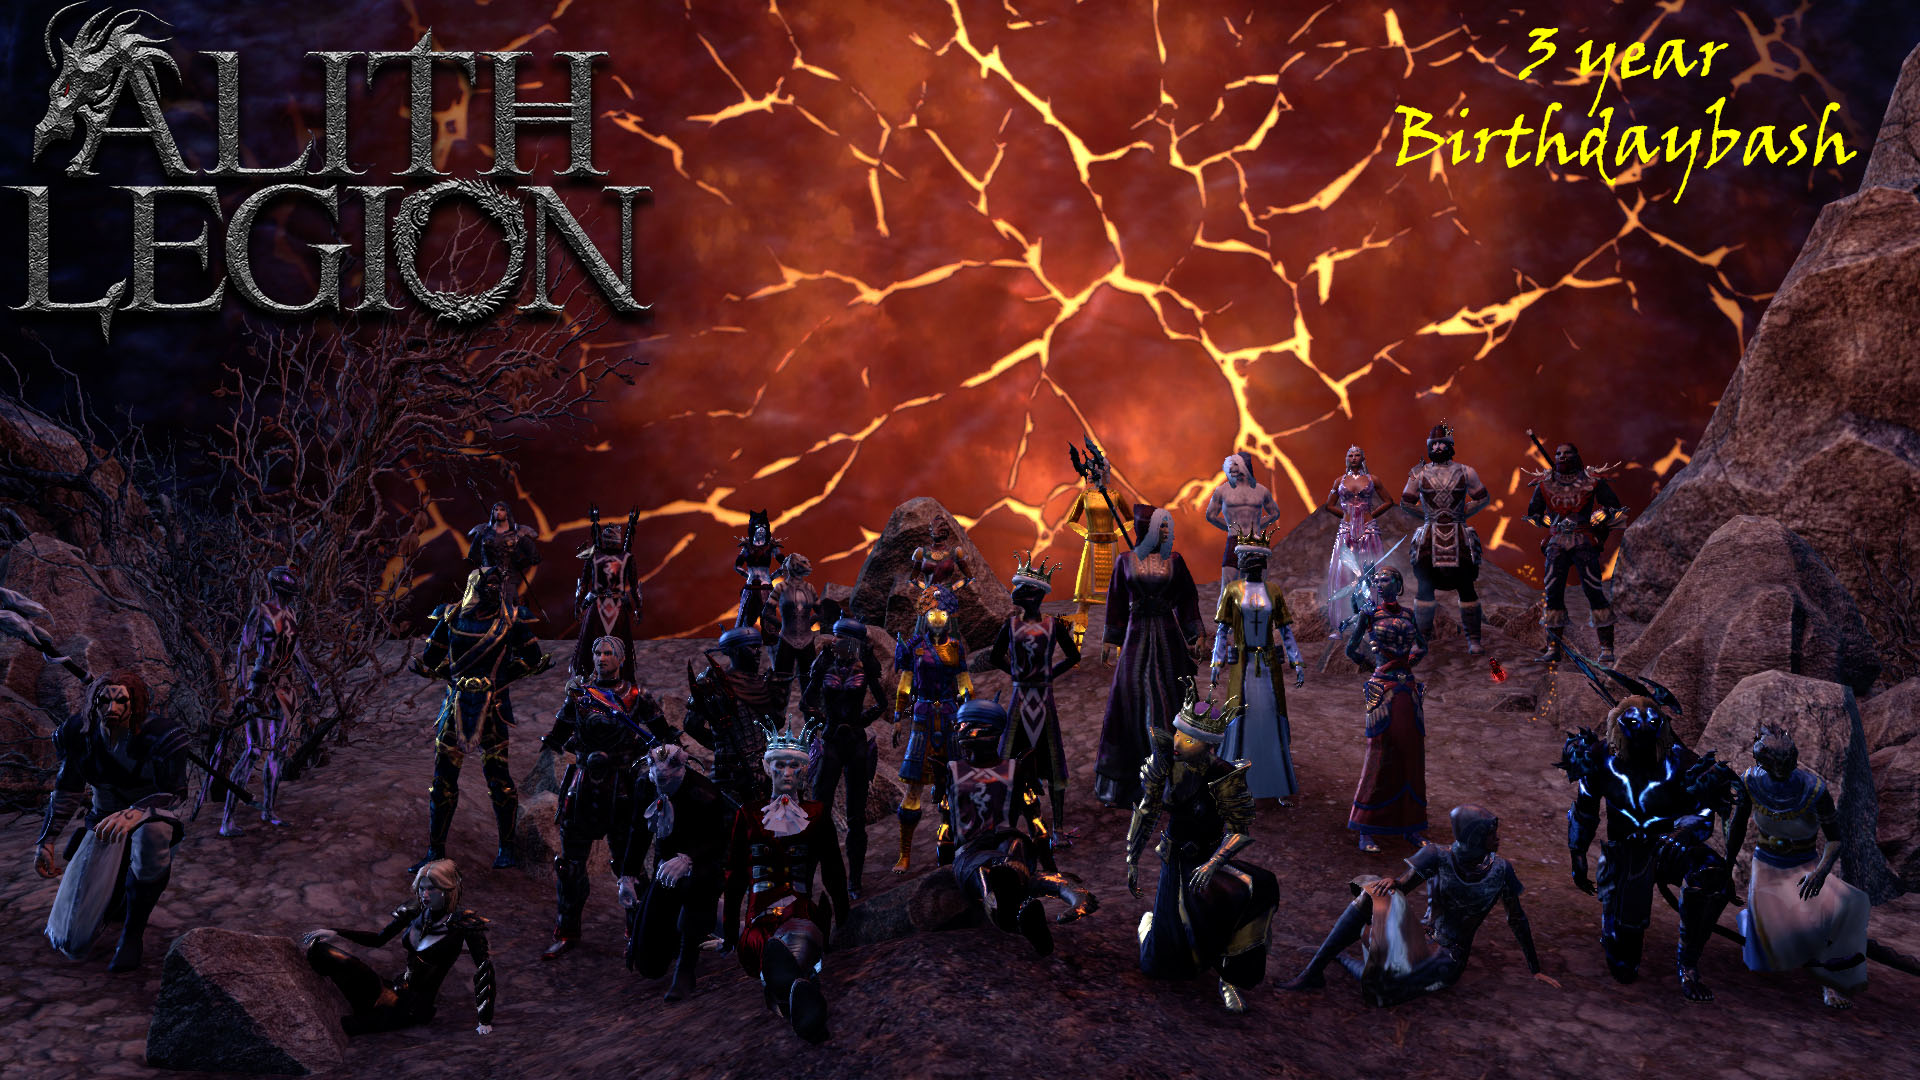 Group picture - birthday bash Alith Legion